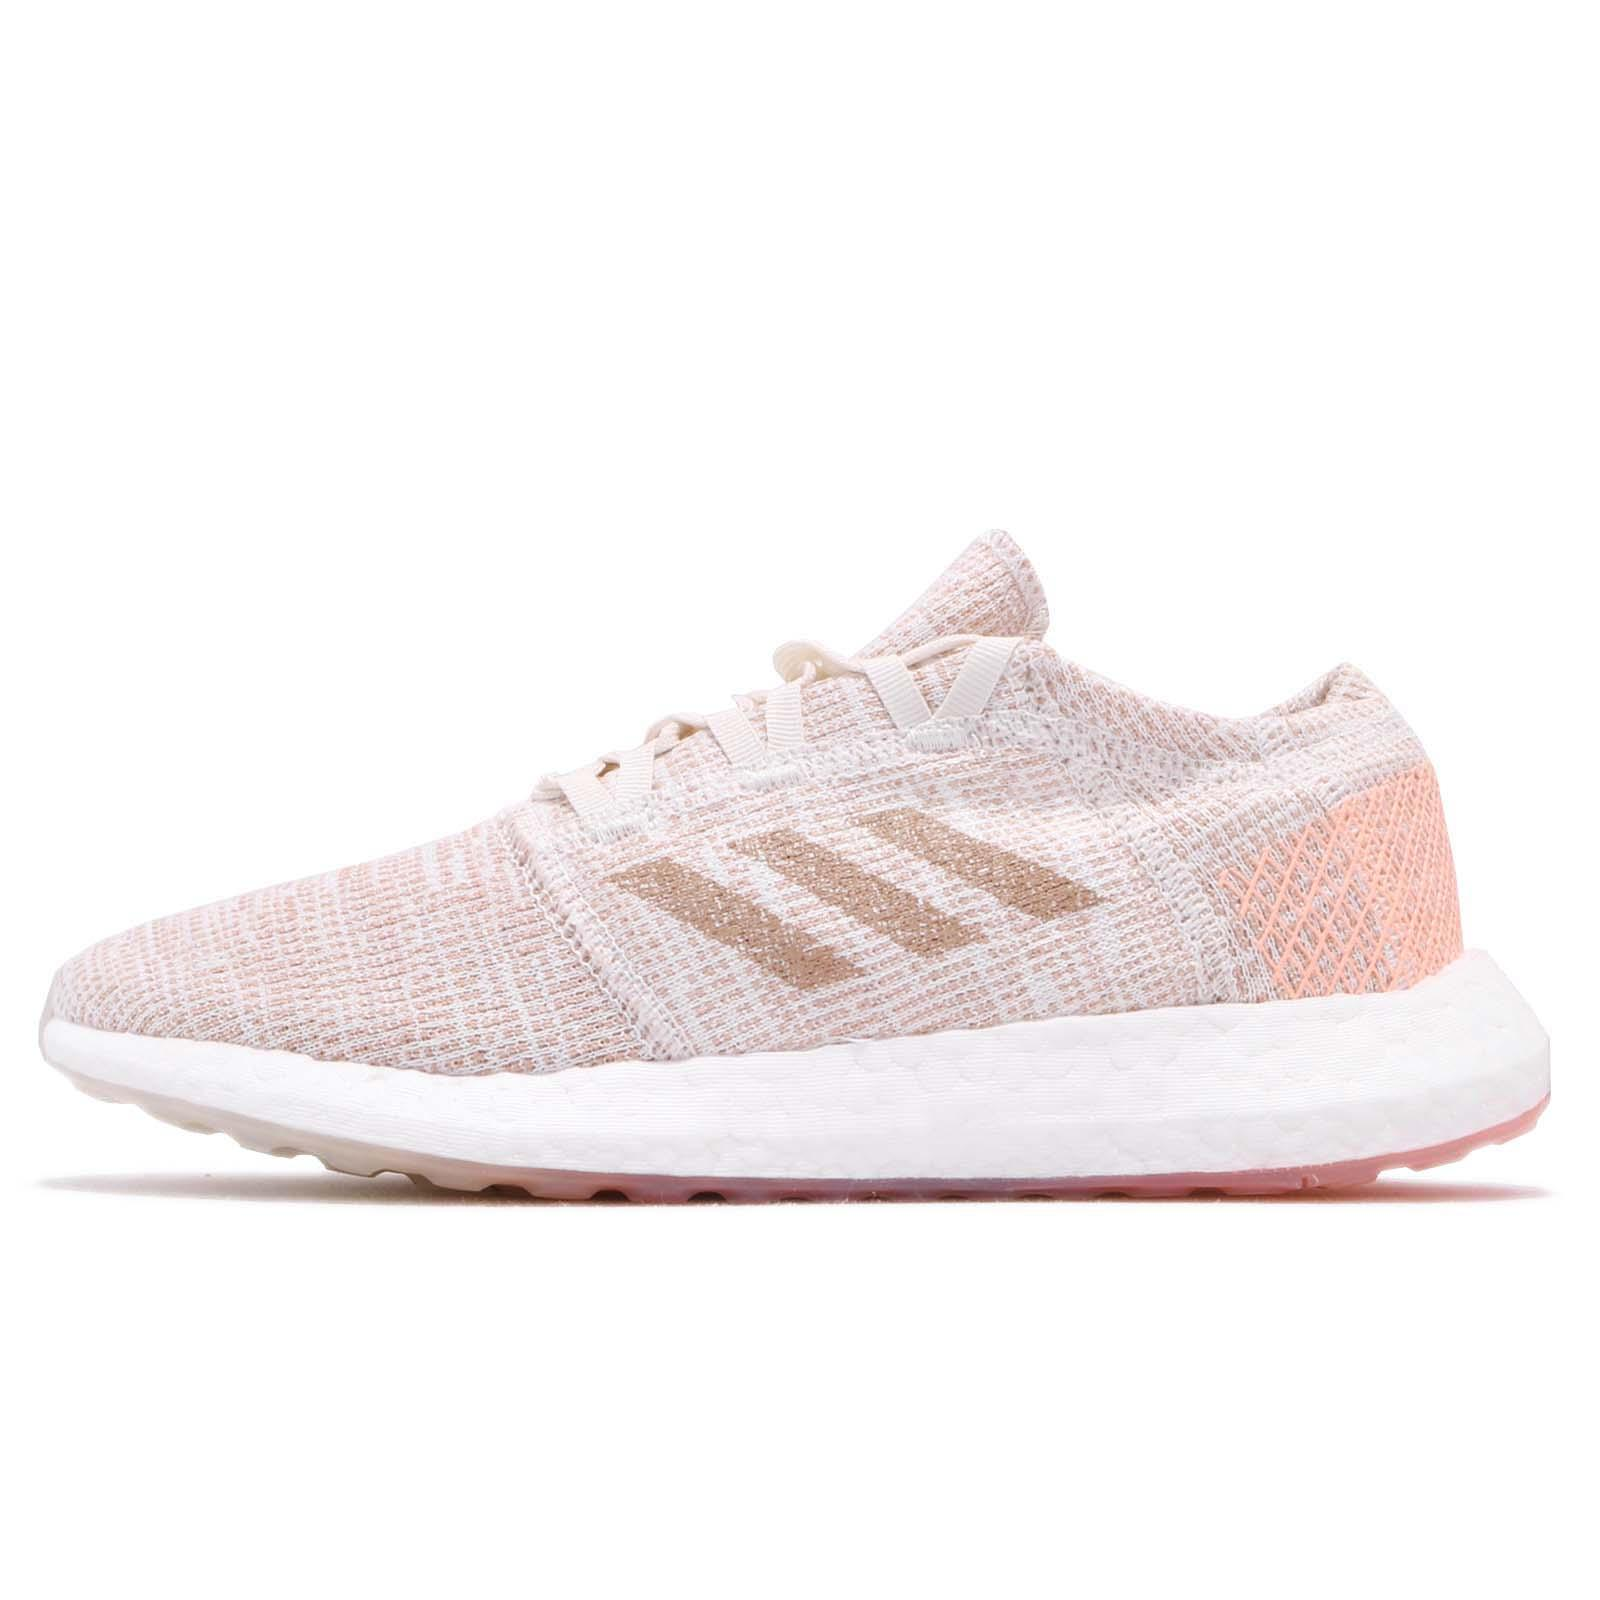 2a69cb3f4 adidas PureBOOST GO W Pink Orange White Women Running Shoes Sneakers G54519